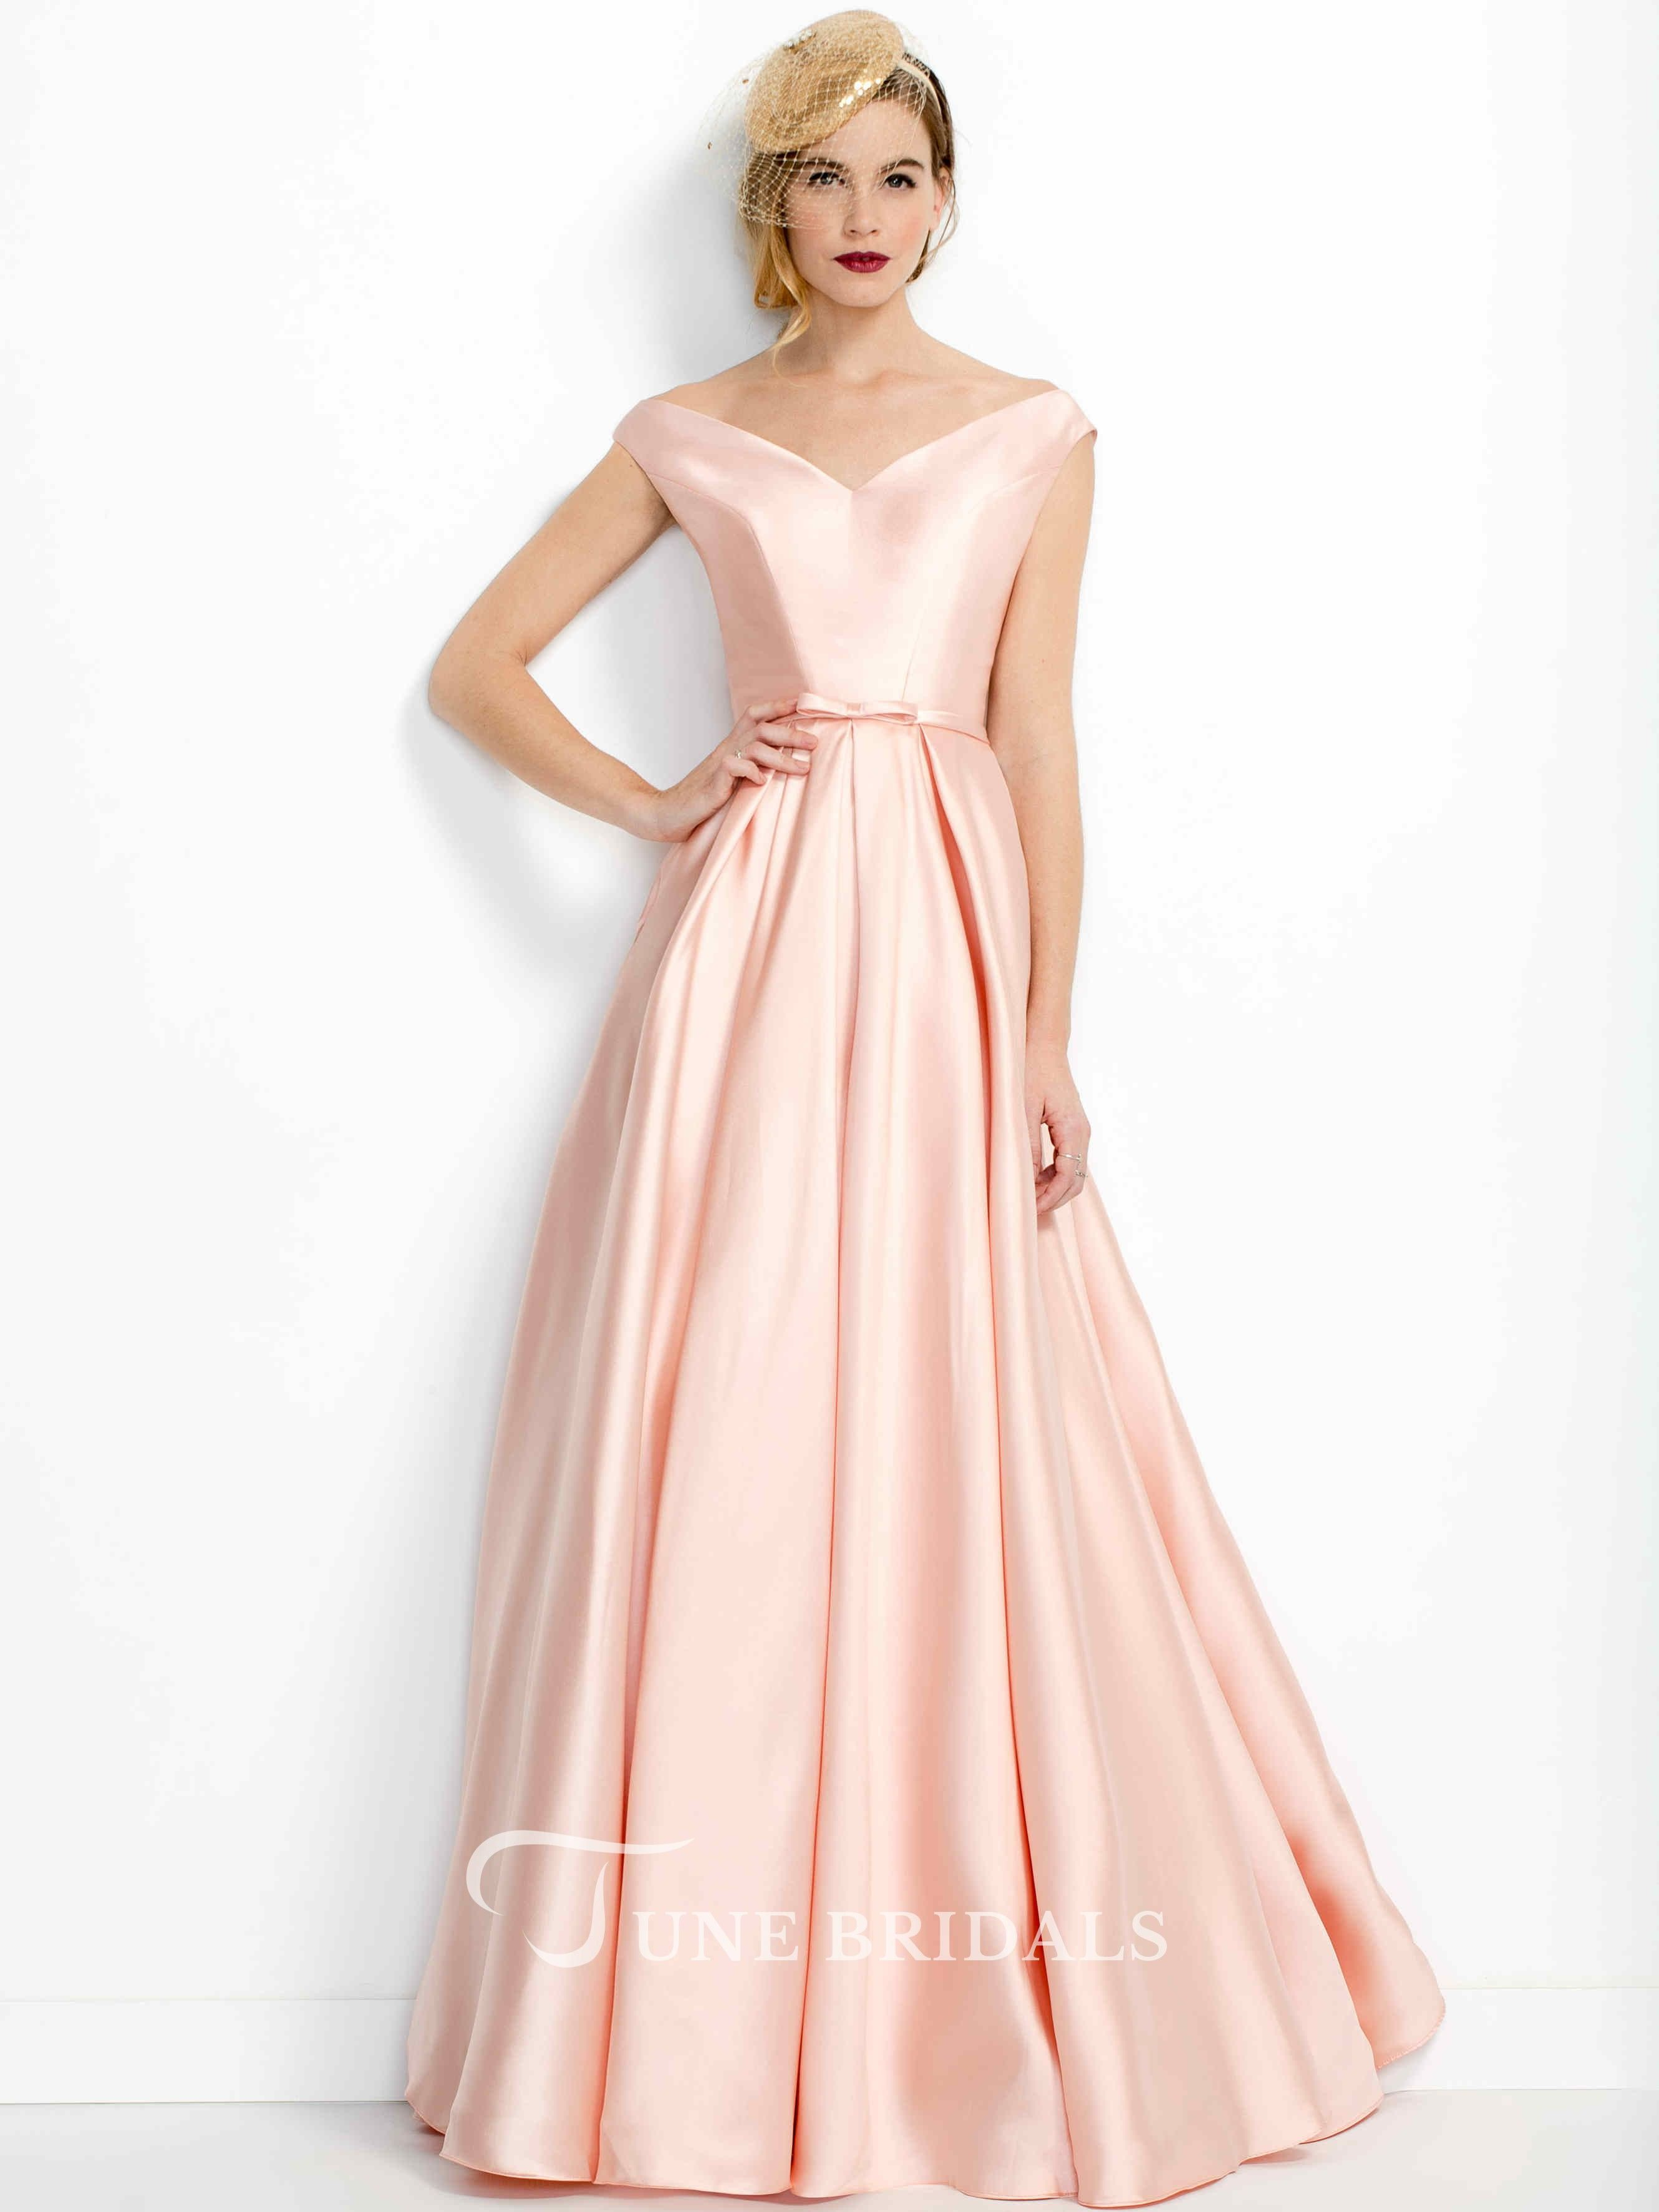 6bfc110ef82 A-Line Pleated V-Neck Floor-Length Satin Prom Dress in 2019